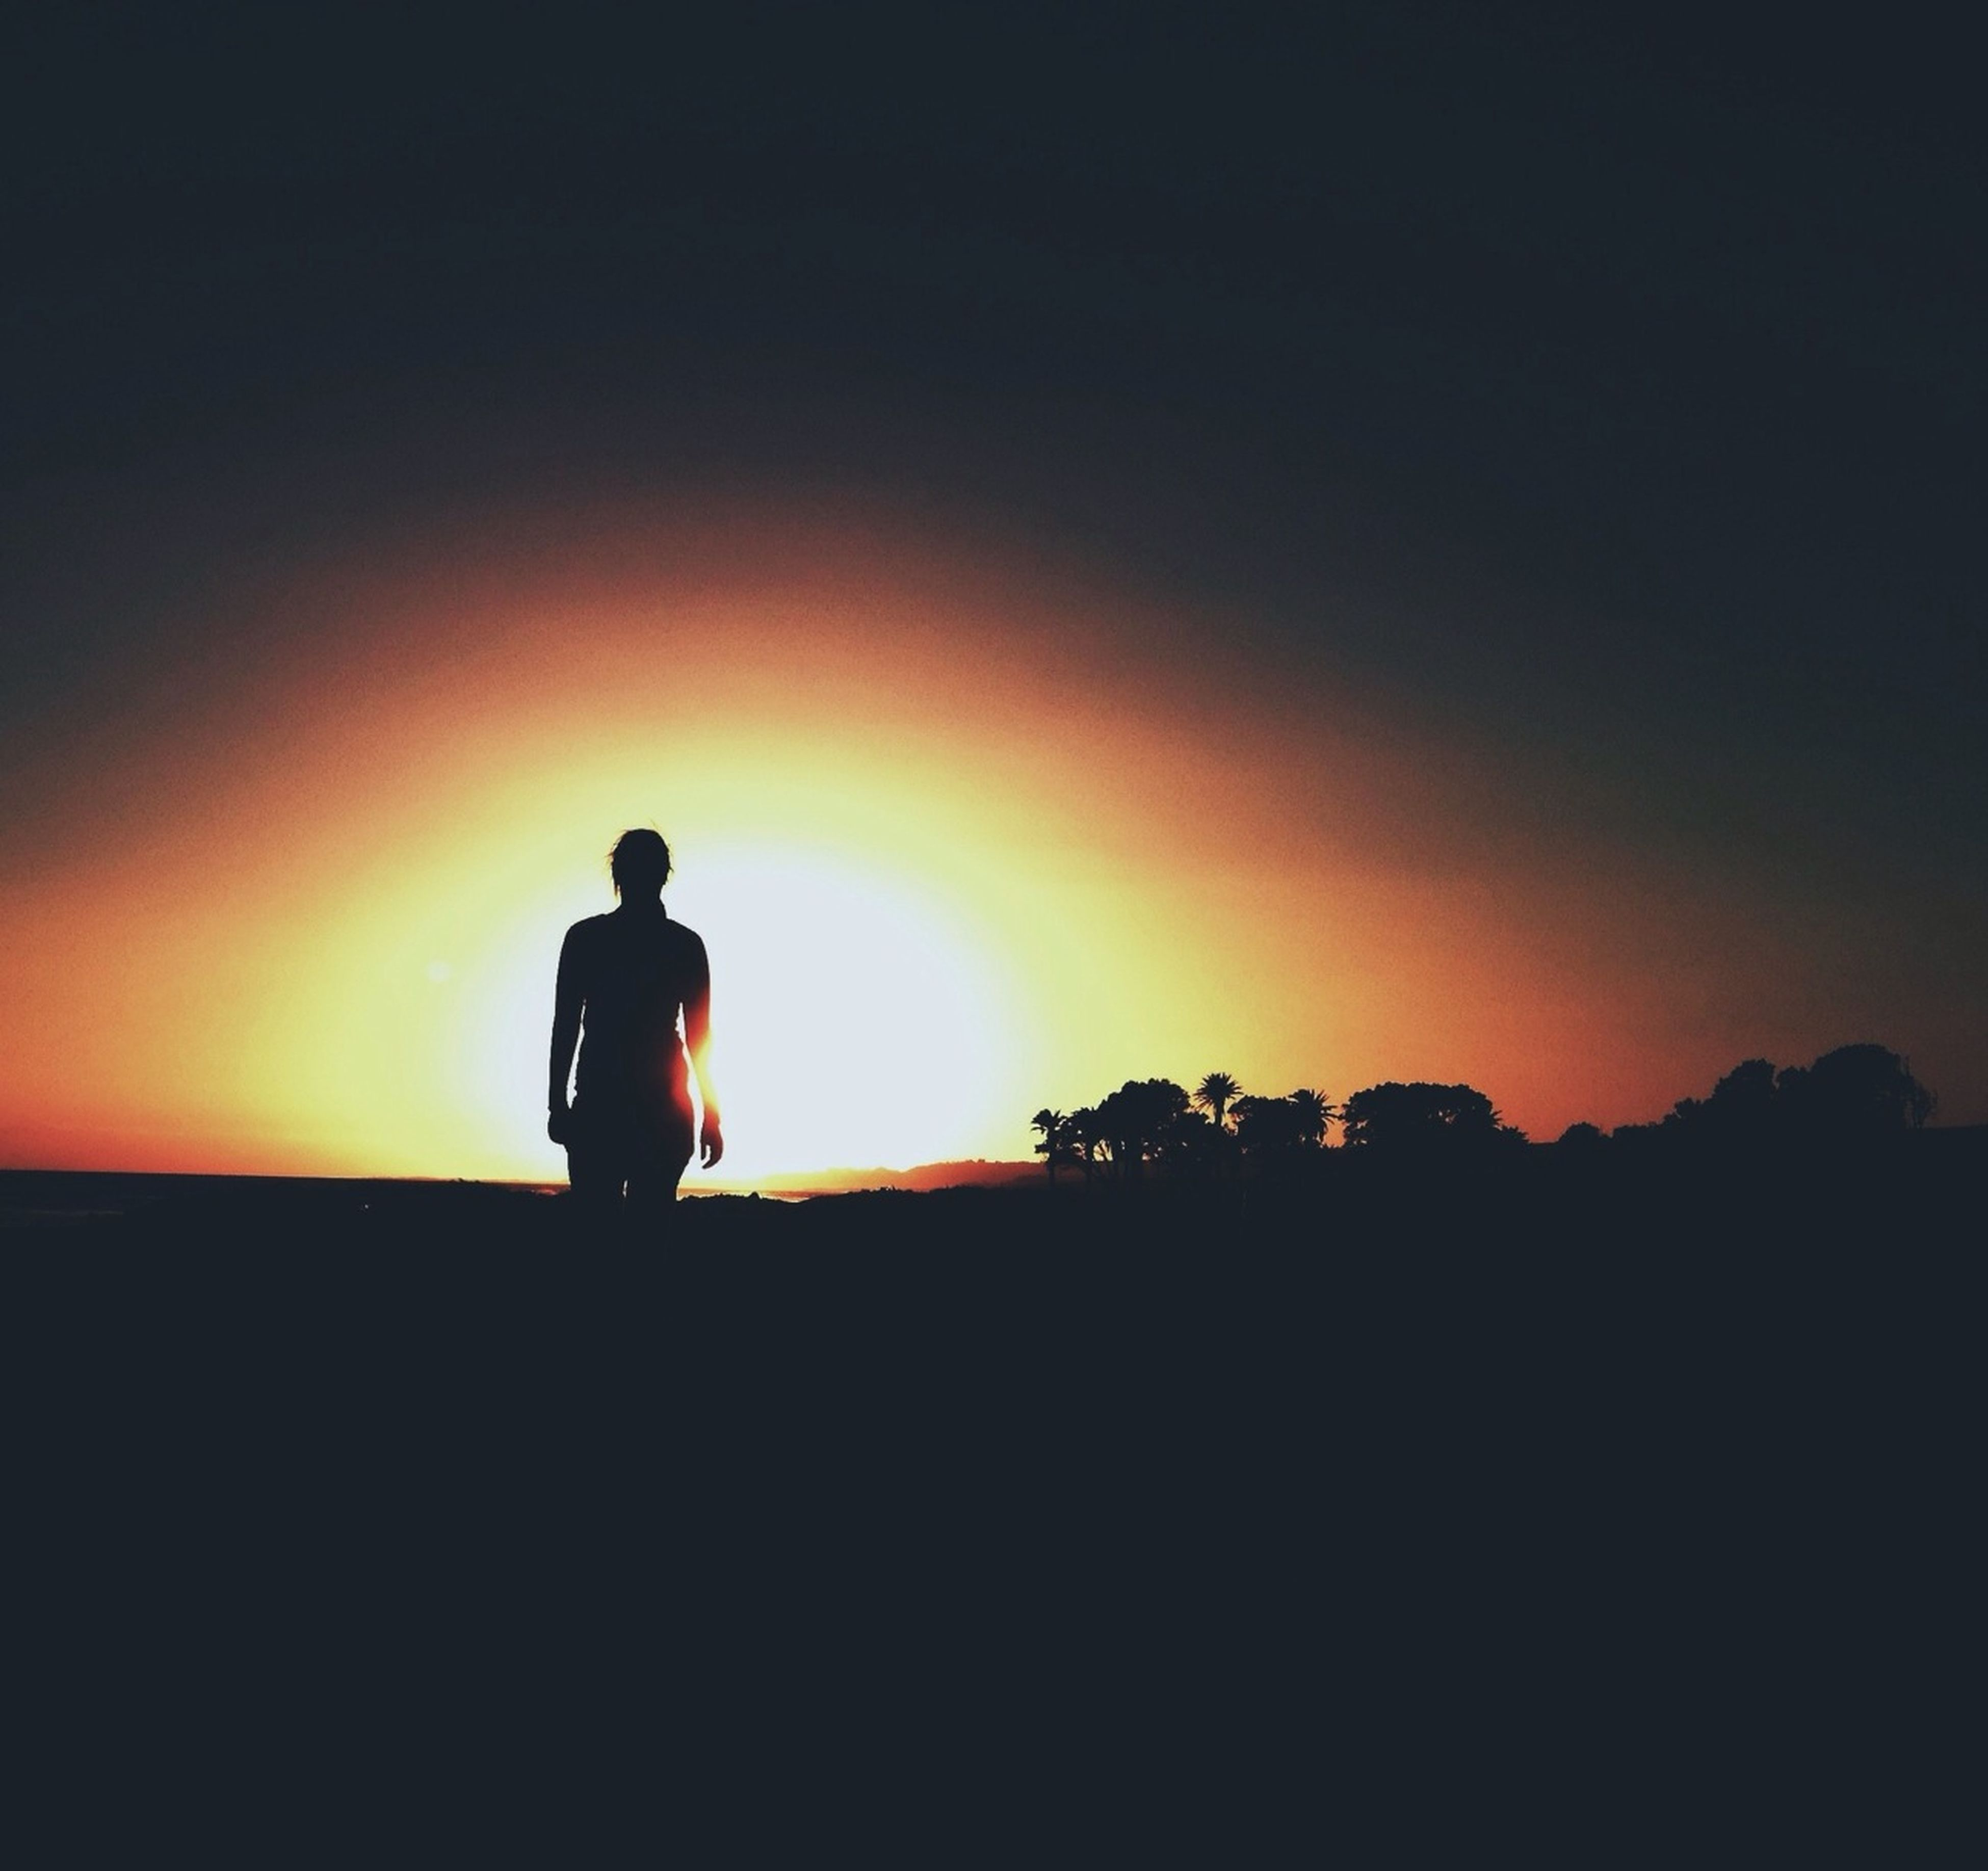 silhouette, sunset, sun, orange color, copy space, men, lifestyles, leisure activity, scenics, tranquil scene, standing, beauty in nature, tranquility, outline, sky, idyllic, nature, clear sky